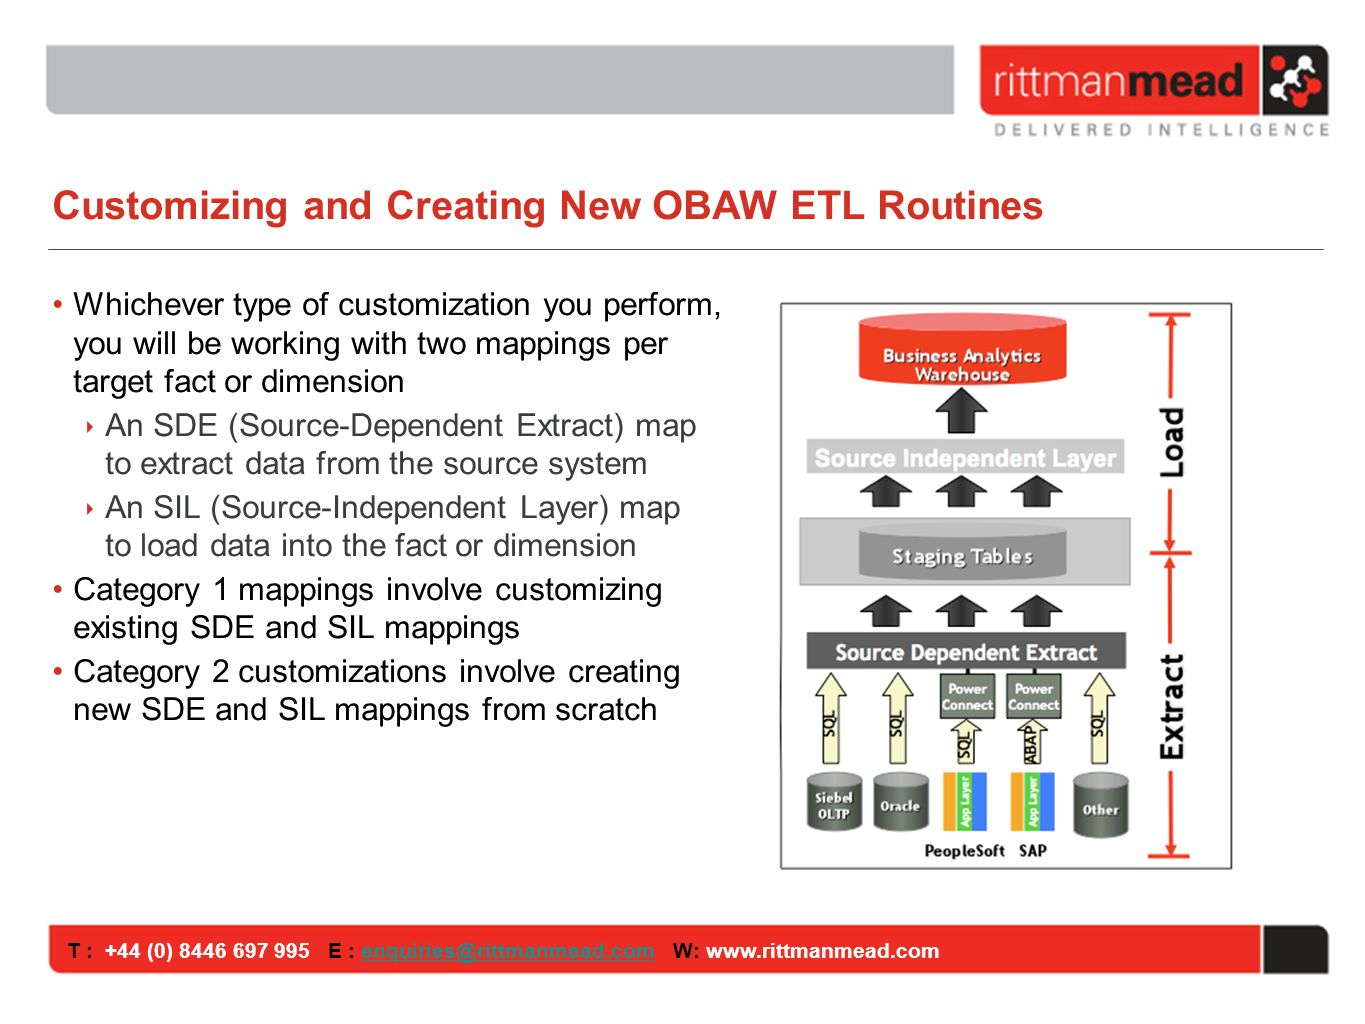 T : +44 (0) E : W: Customizing and Creating New OBAW ETL Routines Whichever type of customization you perform, you will be working with two mappings per target fact or dimension An SDE (Source-Dependent Extract) map to extract data from the source system An SIL (Source-Independent Layer) map to load data into the fact or dimension Category 1 mappings involve customizing existing SDE and SIL mappings Category 2 customizations involve creating new SDE and SIL mappings from scratch